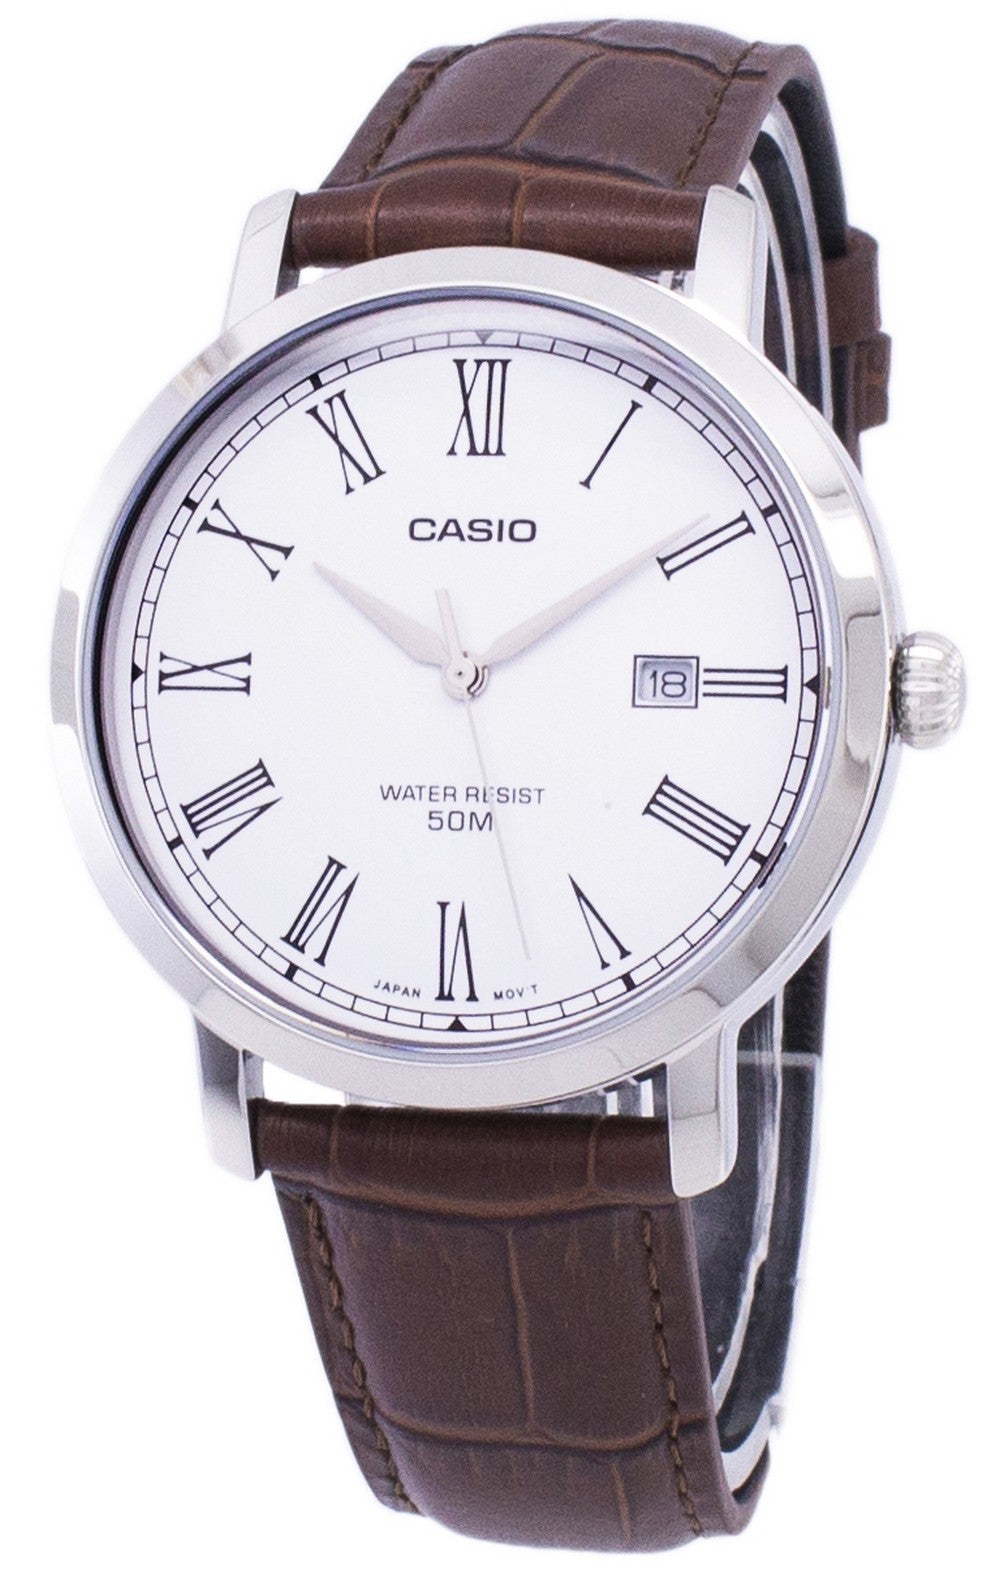 Casio Analog Quartz MTP-E149L-7BV MTPE149L-7BV Men's Watch